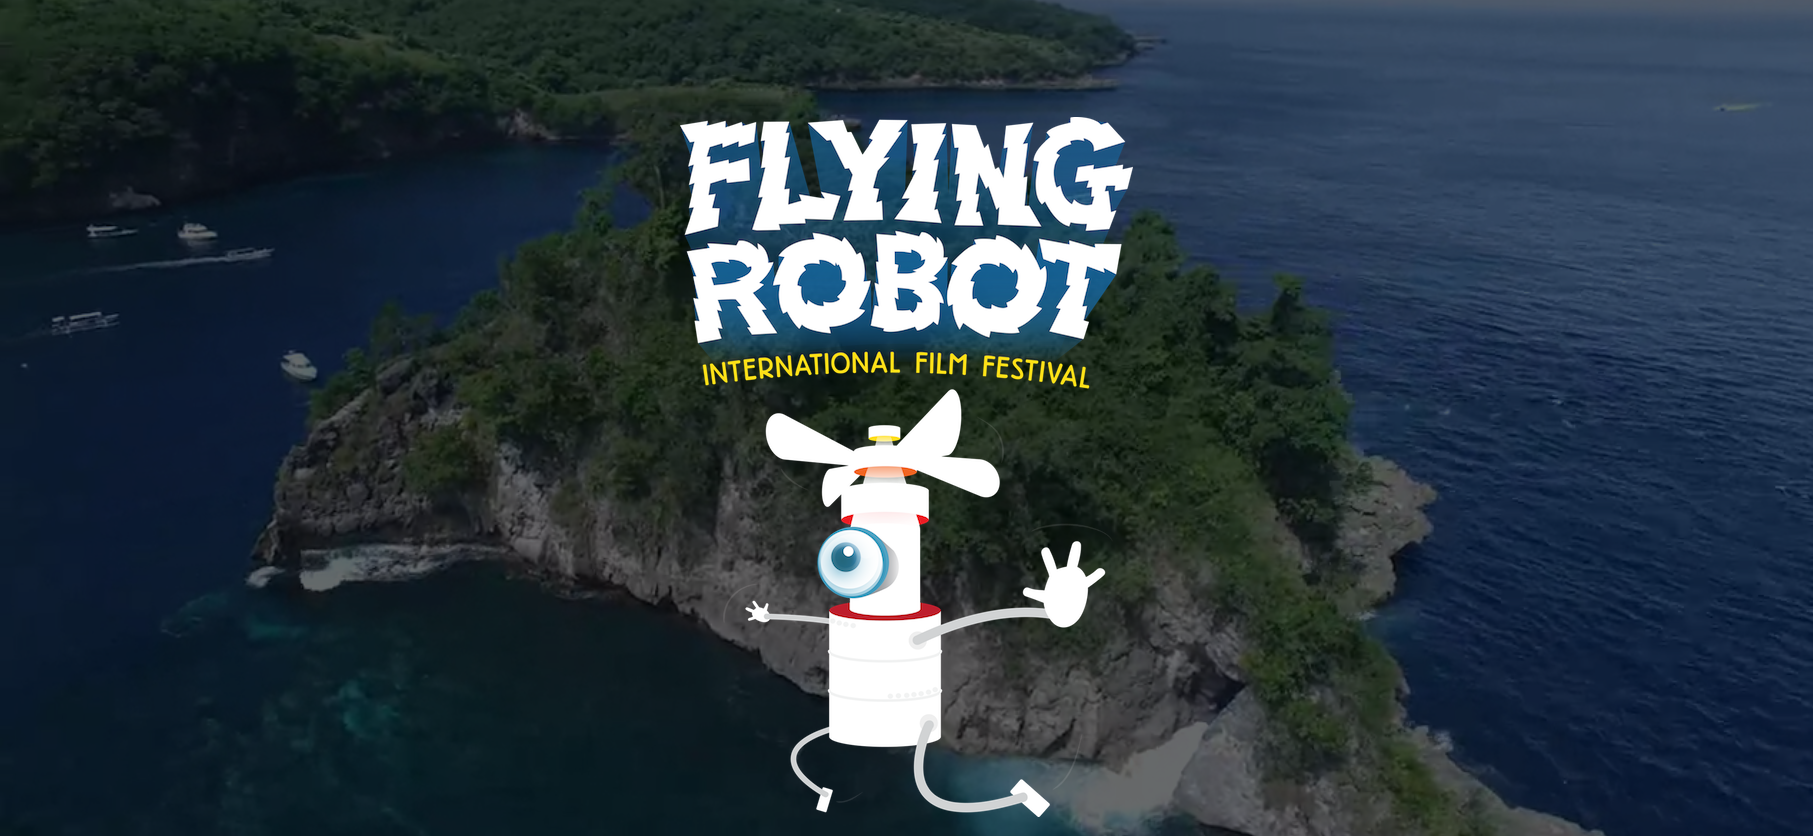 Last day to enter the Flying Robot international Film Festival